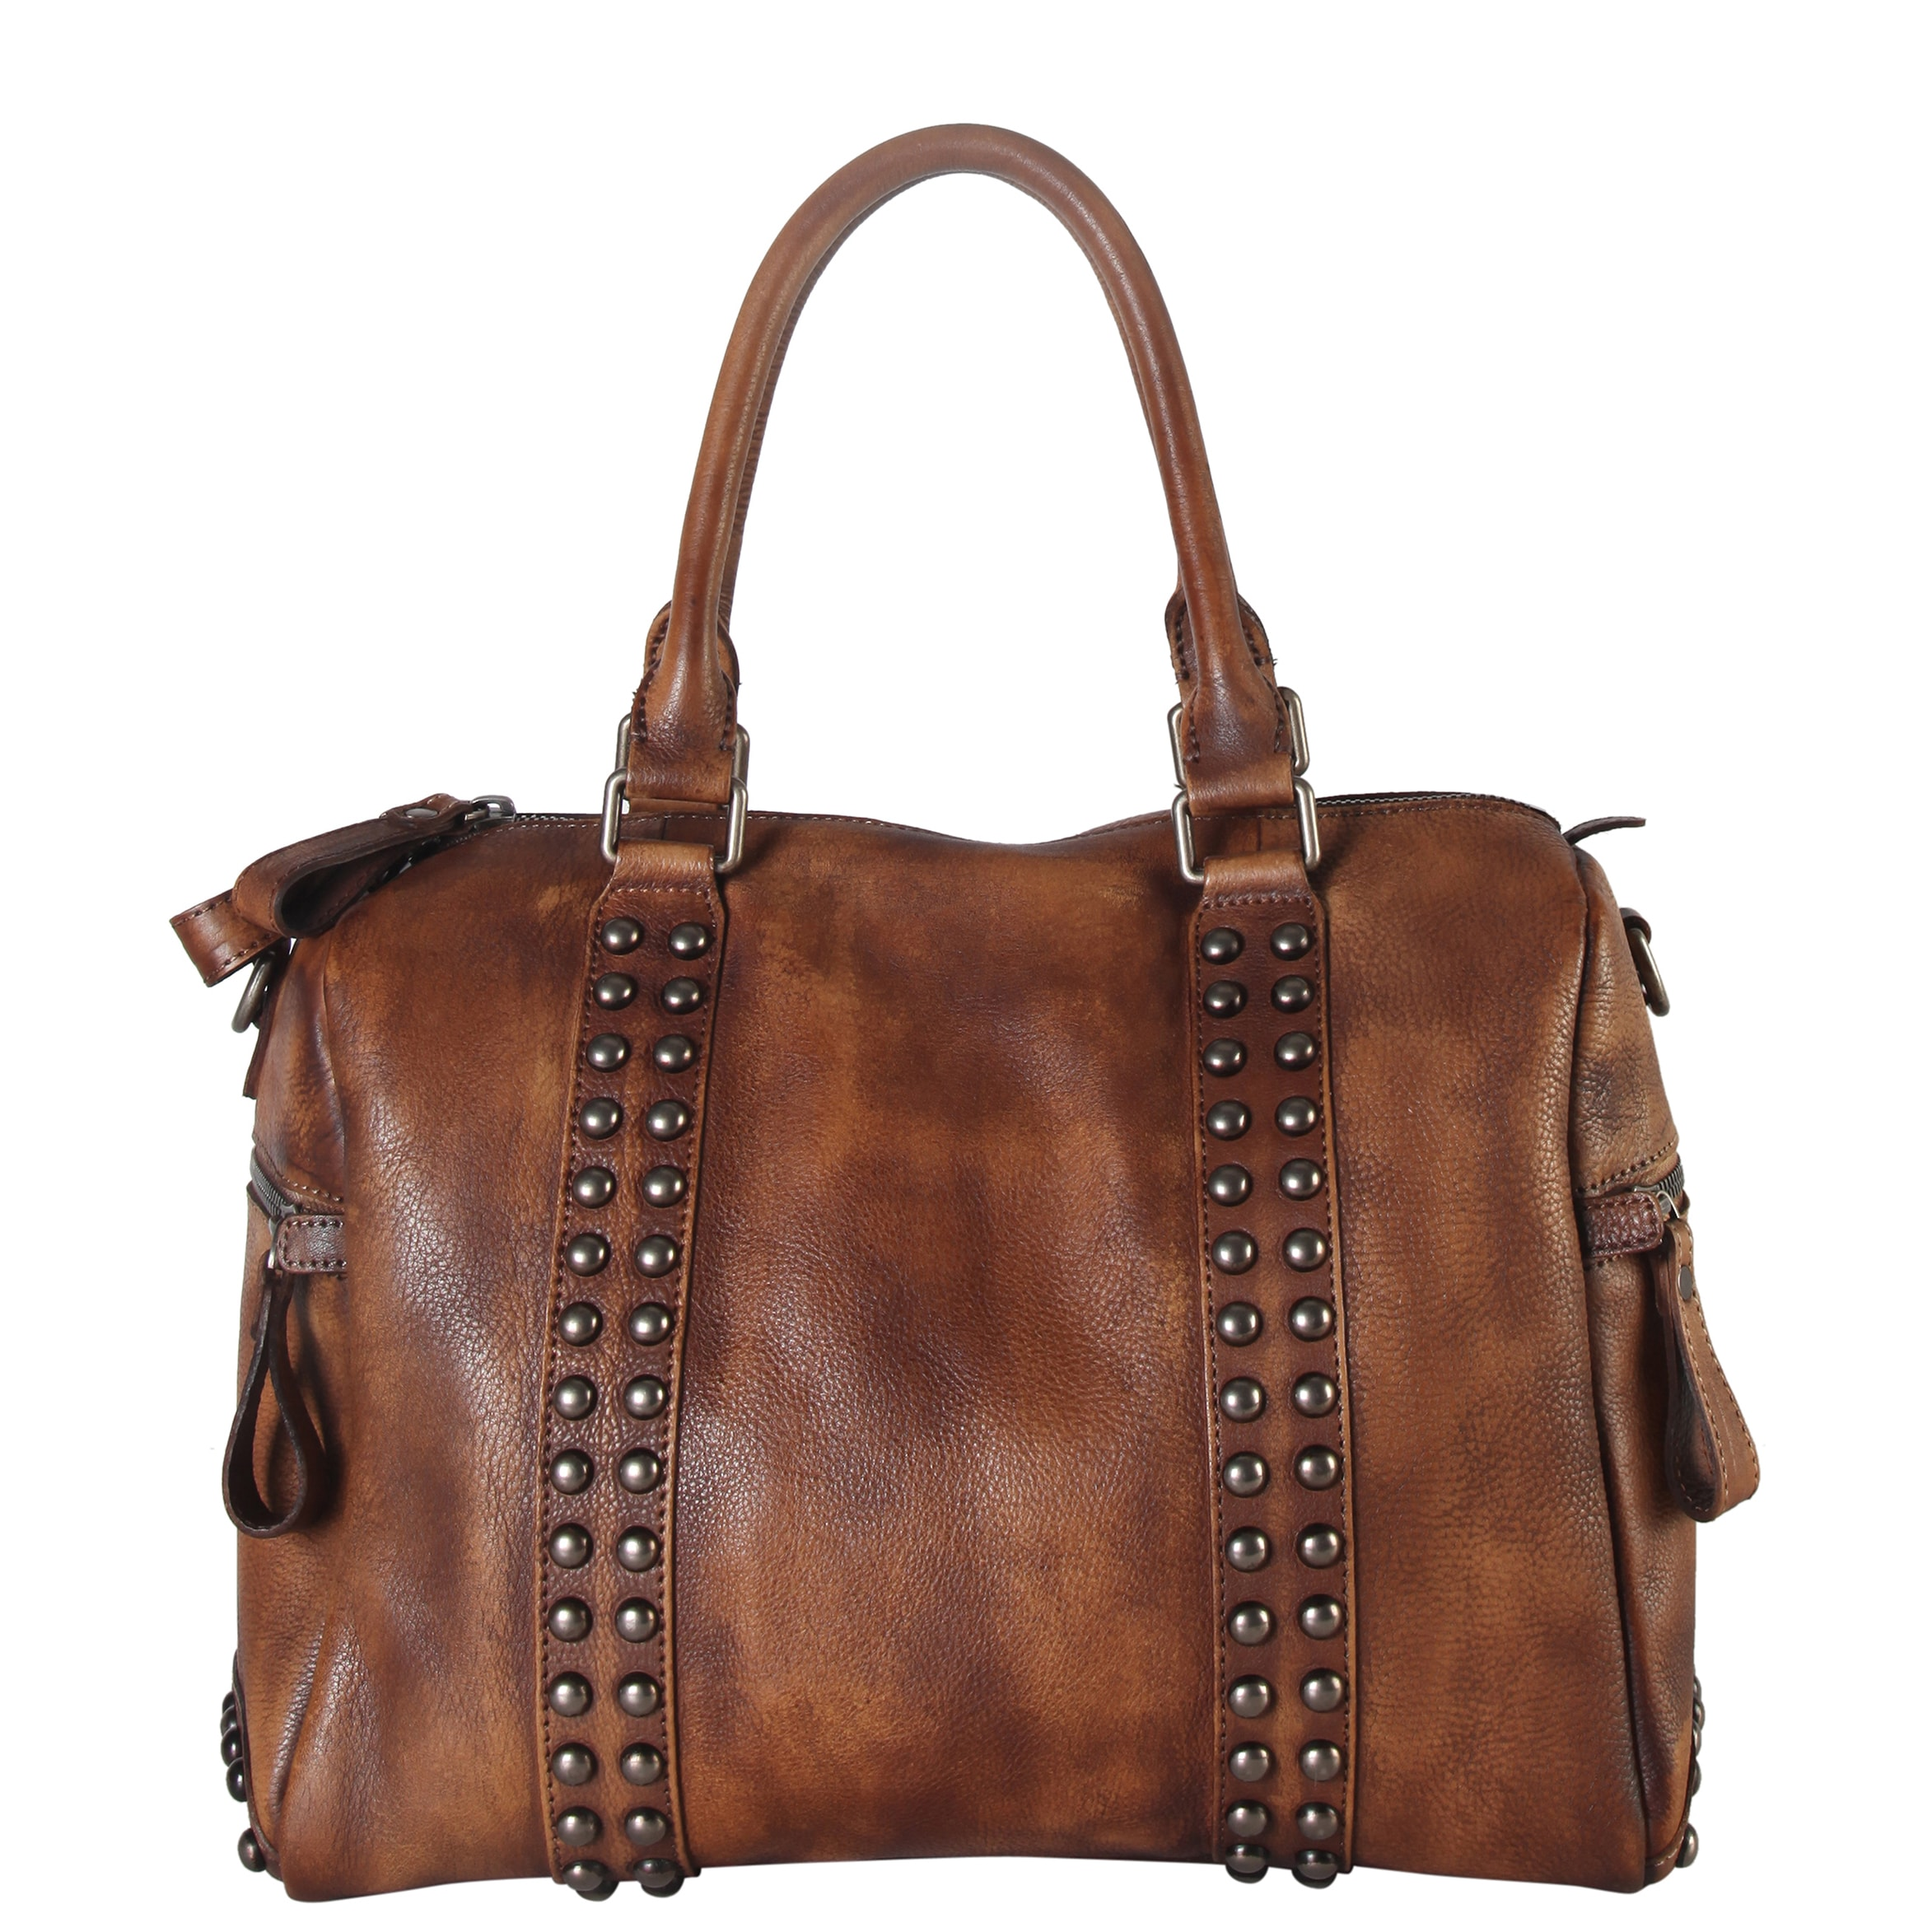 88447dc8e03b Diophy Genuine Leather Medium Studded Doctor-style Tote Bag